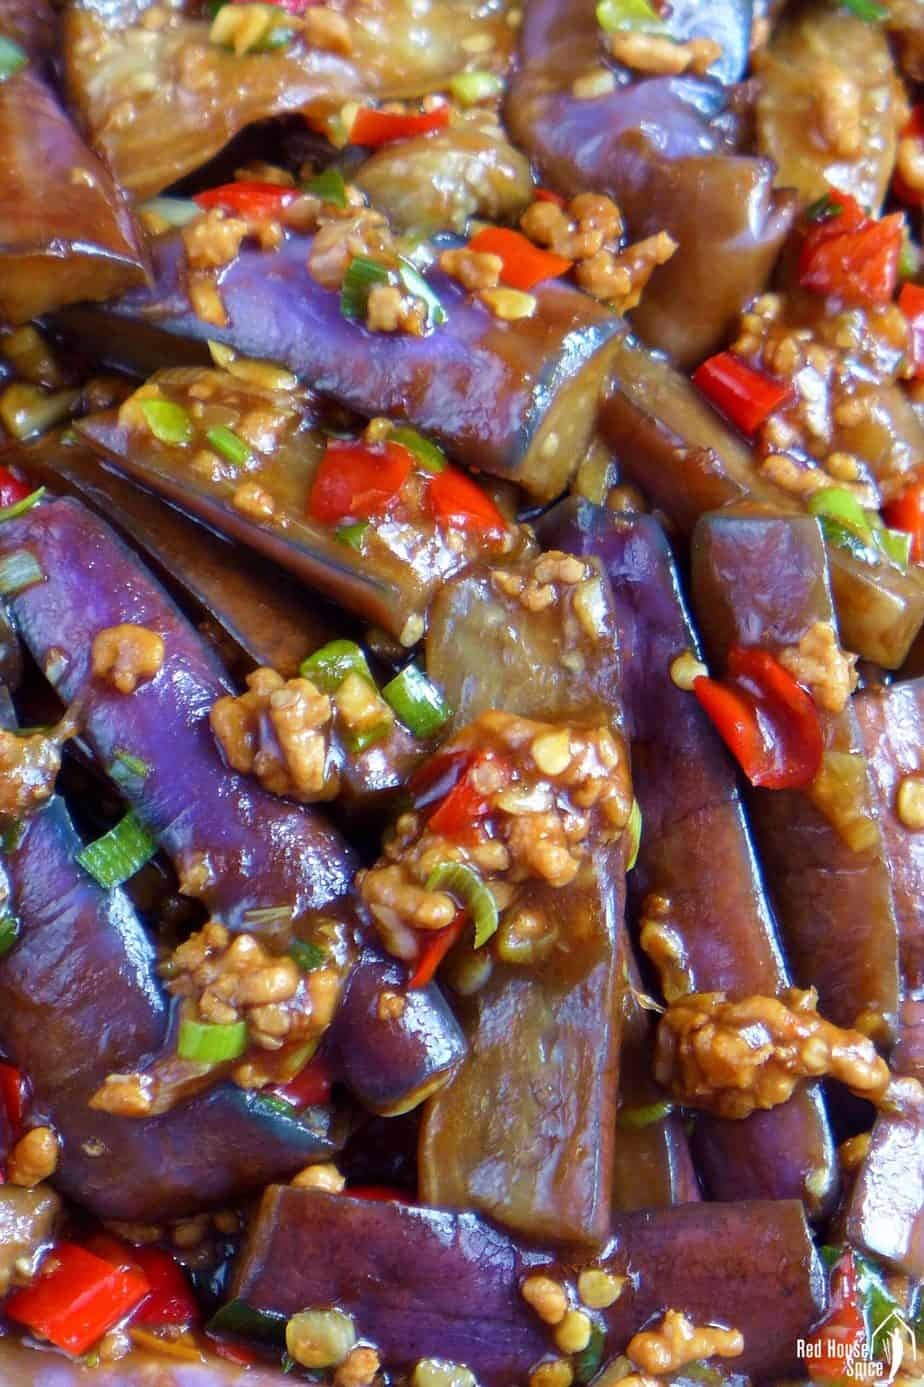 Eggplant pieces covered with minced meat and a thick sauce